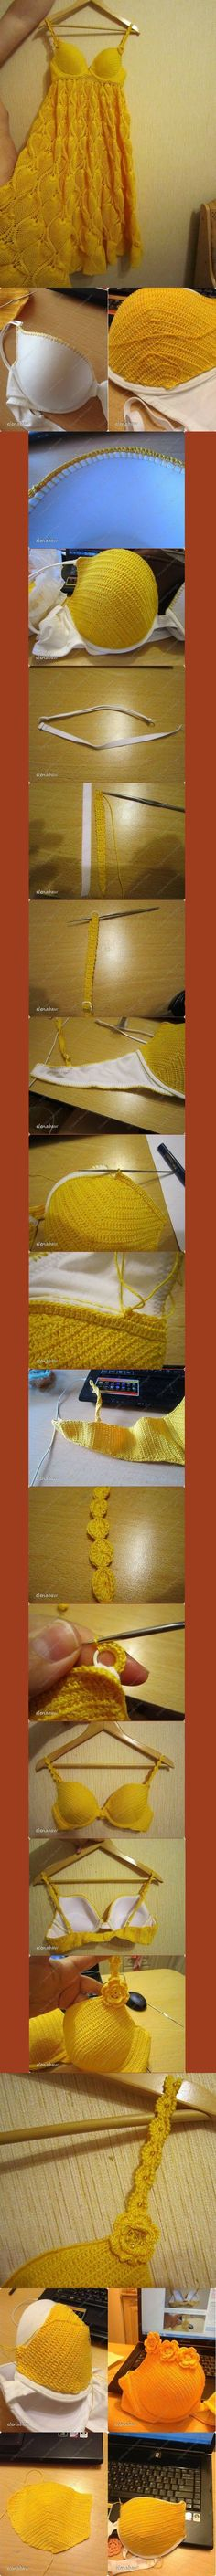 Cobertura para corpiños al crochet. I can't read Russian and I'd probably start with a balconette or sports bra for more coverage, but I like this idea for a sundress. Crochet Bra, Mode Crochet, Crochet Motifs, Crochet Woman, Crochet Blouse, Crochet Crafts, Crochet Clothes, Crochet Stitches, Crochet Projects